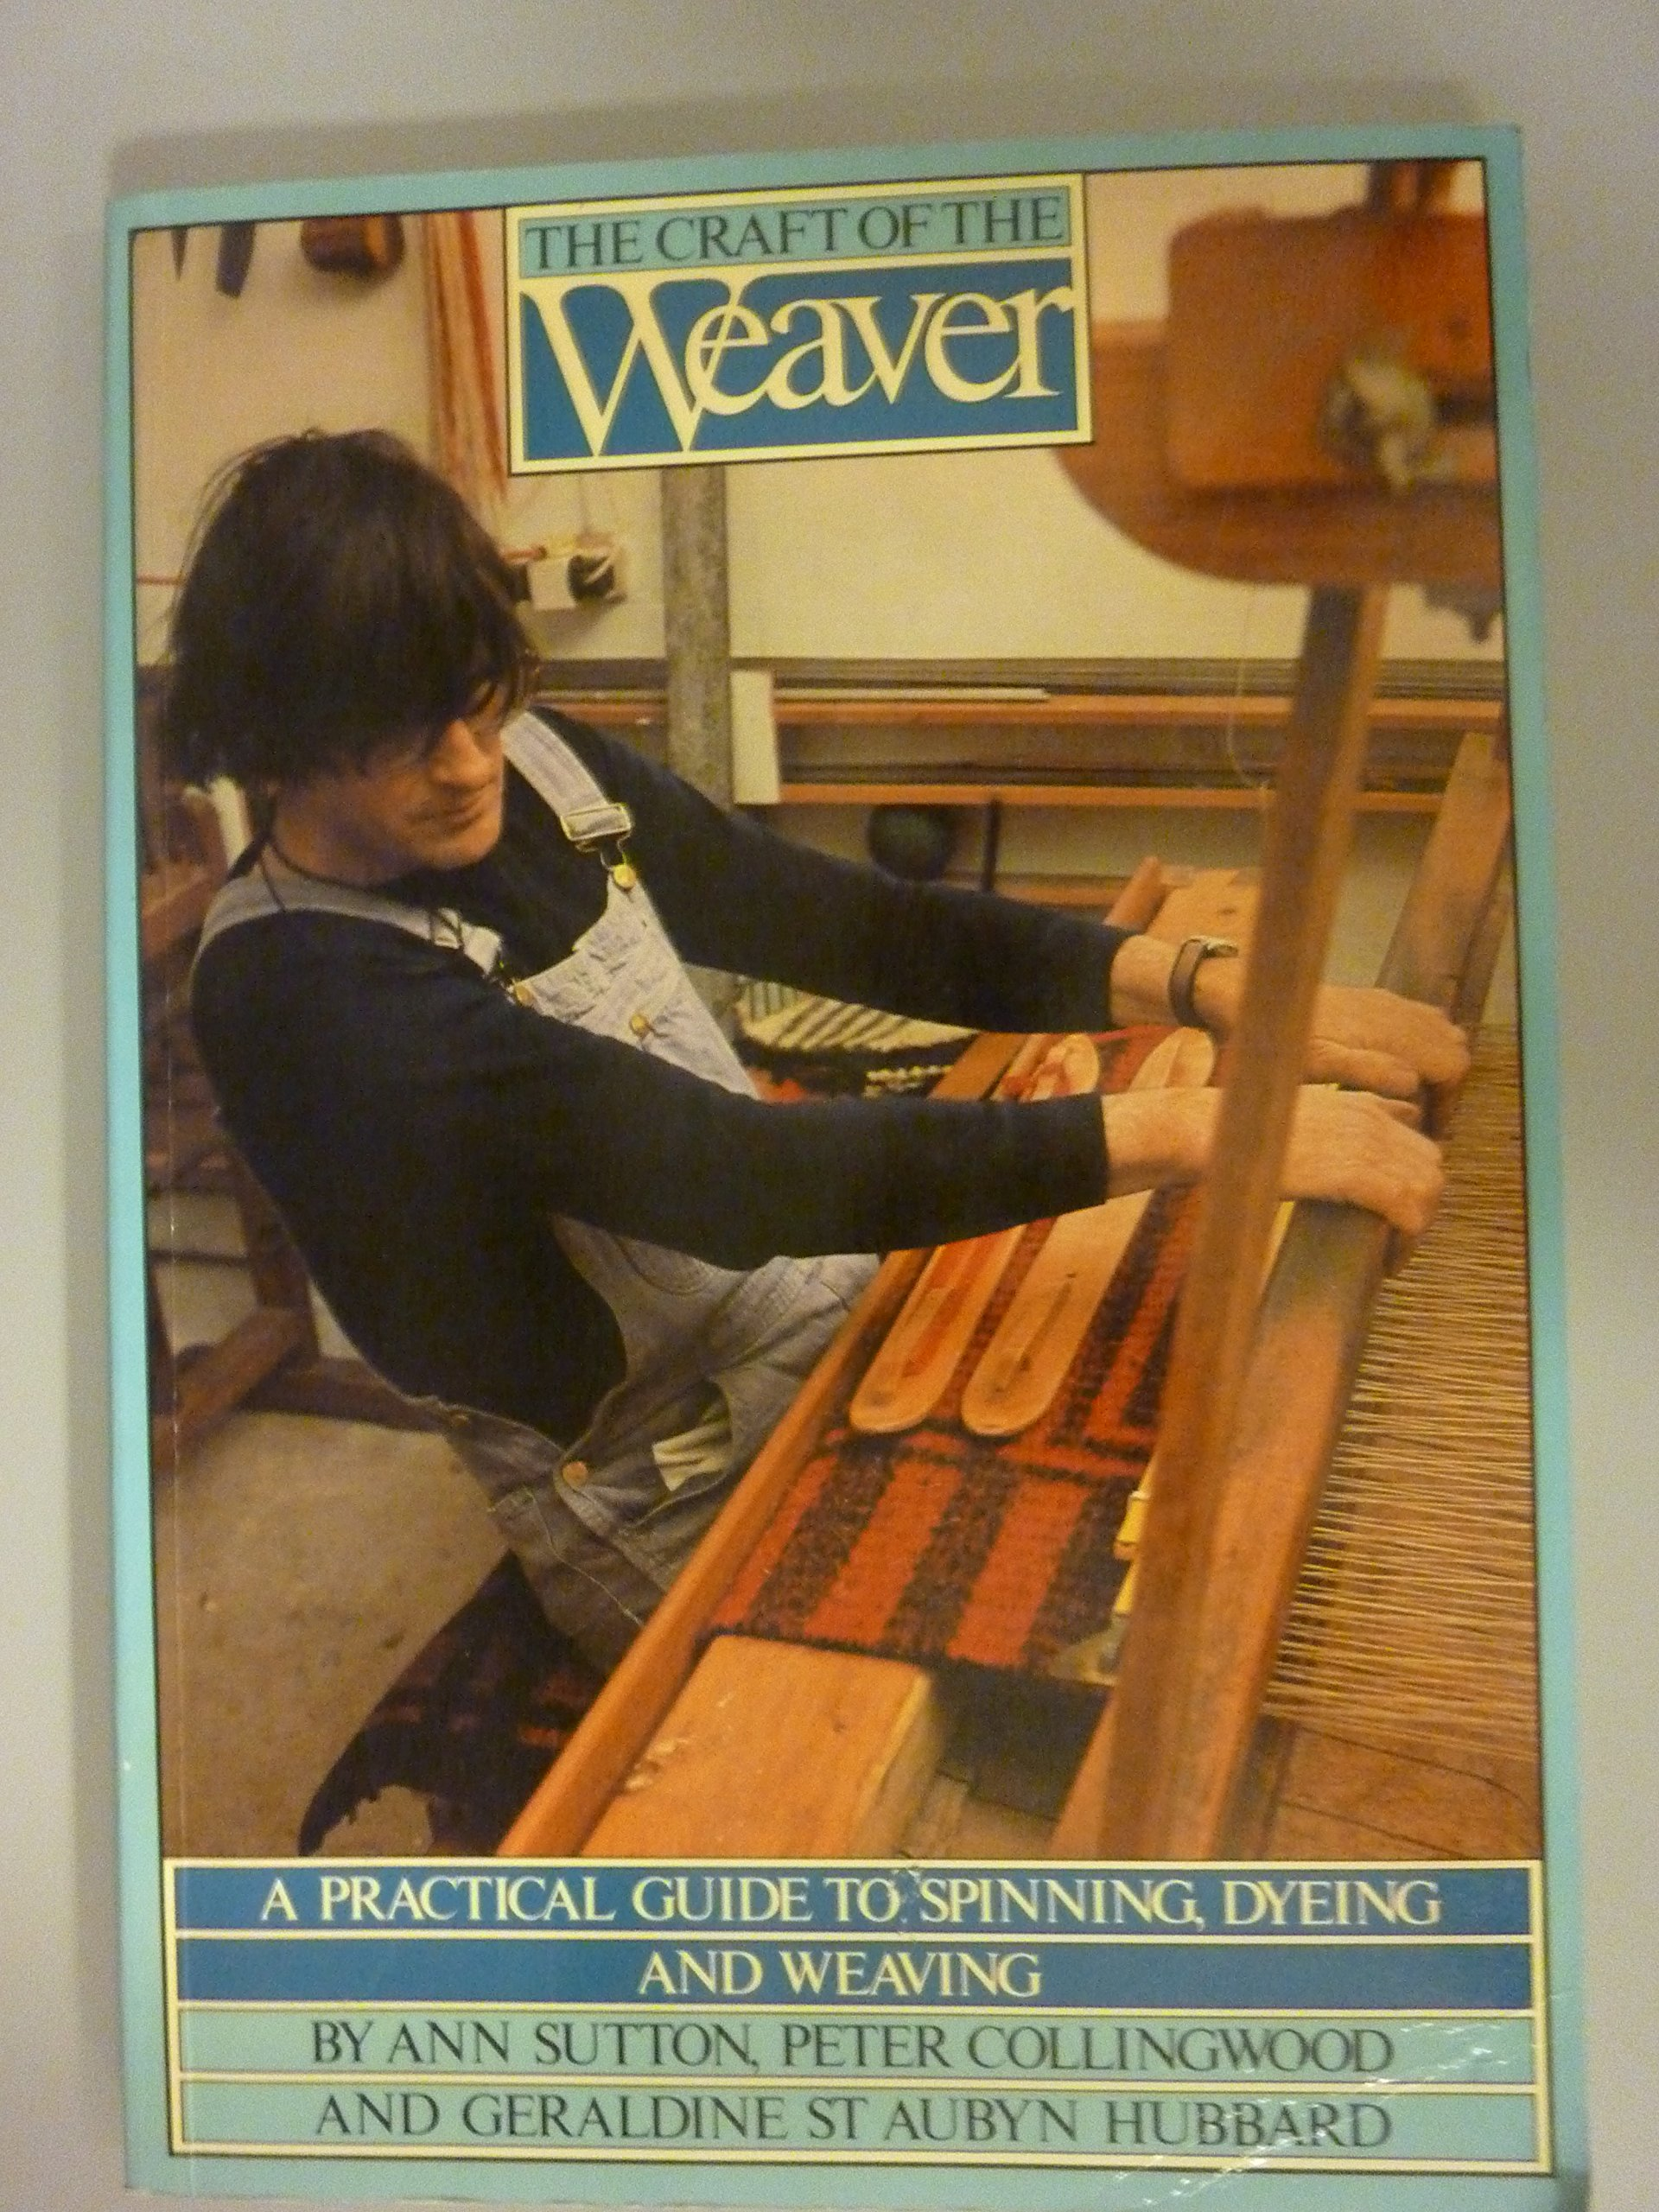 The craft of the weaver